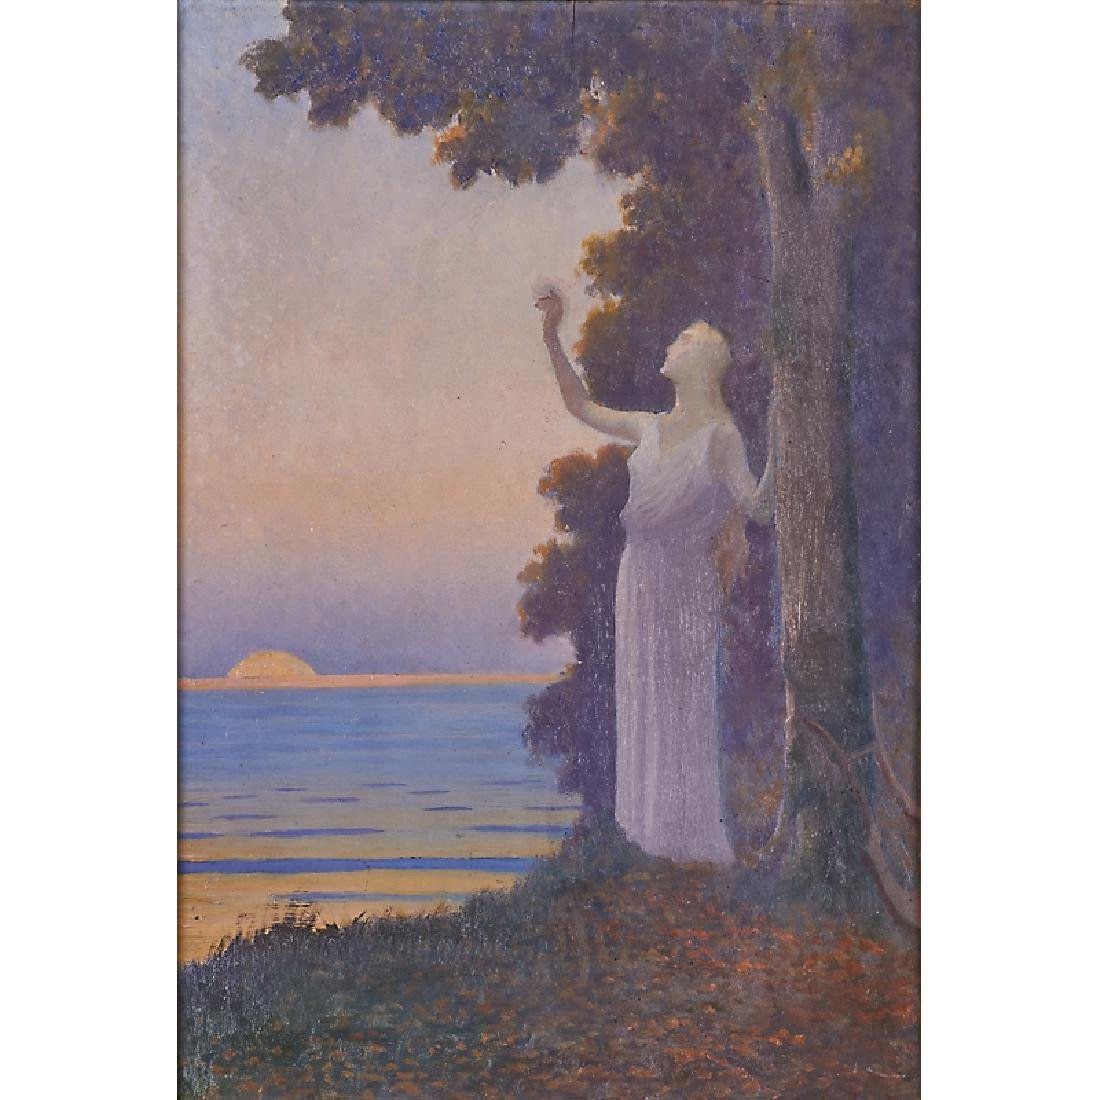 Alphonse Osbert (French, 1857-1939)